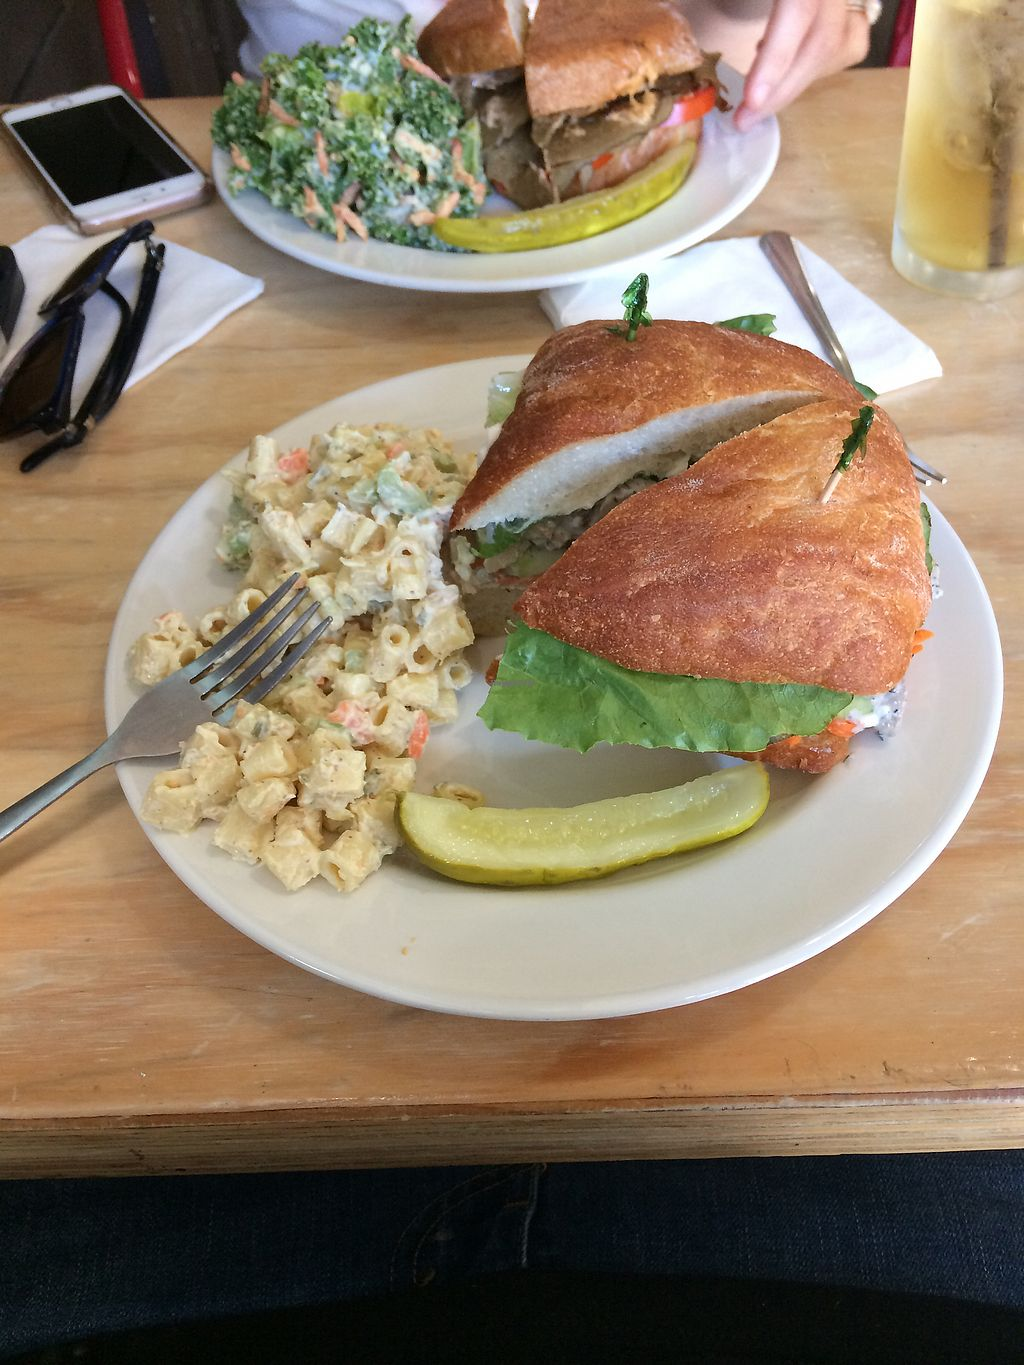 """Photo of Sweetpea Baking Company  by <a href=""""/members/profile/giant%20bunnie"""">giant bunnie</a> <br/>Chink salad w/ macaroni salad  <br/> September 28, 2017  - <a href='/contact/abuse/image/13334/309245'>Report</a>"""